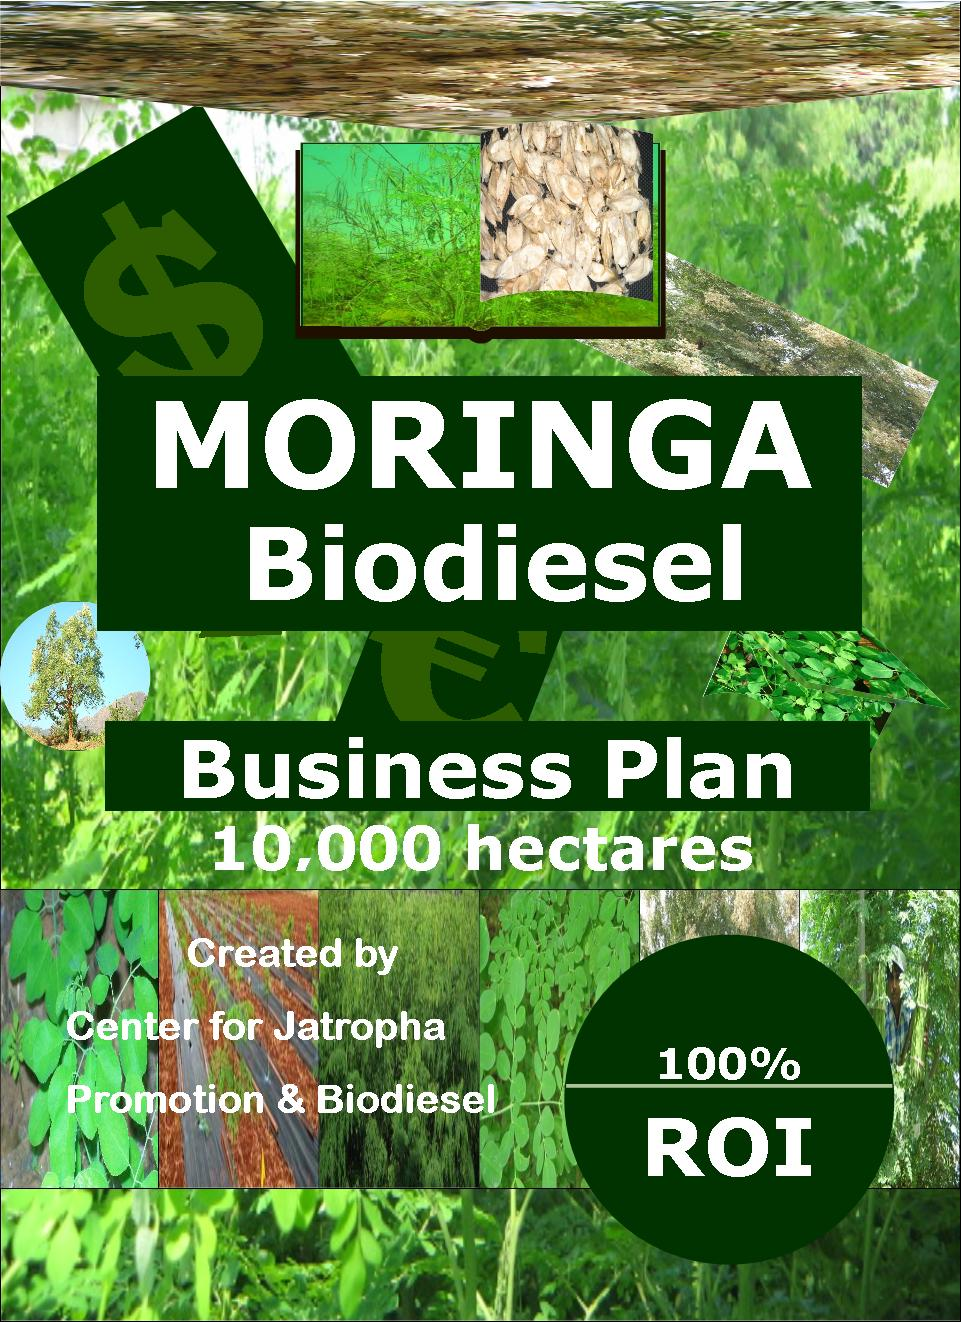 Moringa biodiesel business plan 10 k